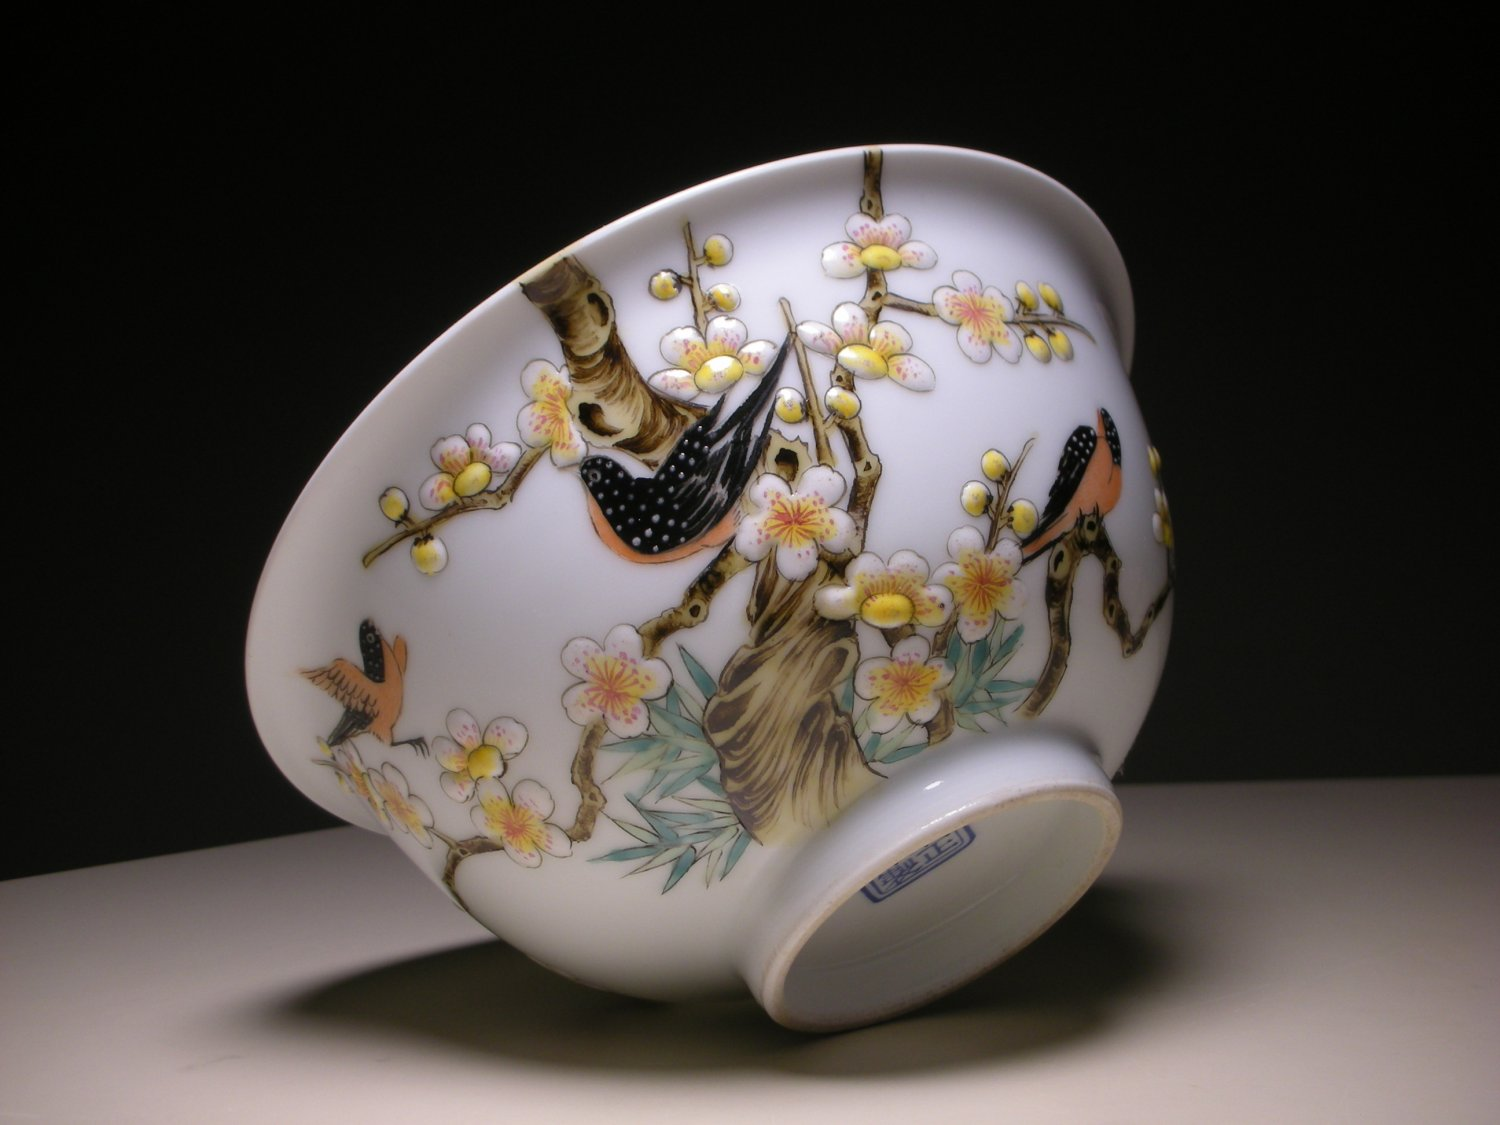 Vintage Chinese Porcelain Relief Bowl With Birds Amp Flowers